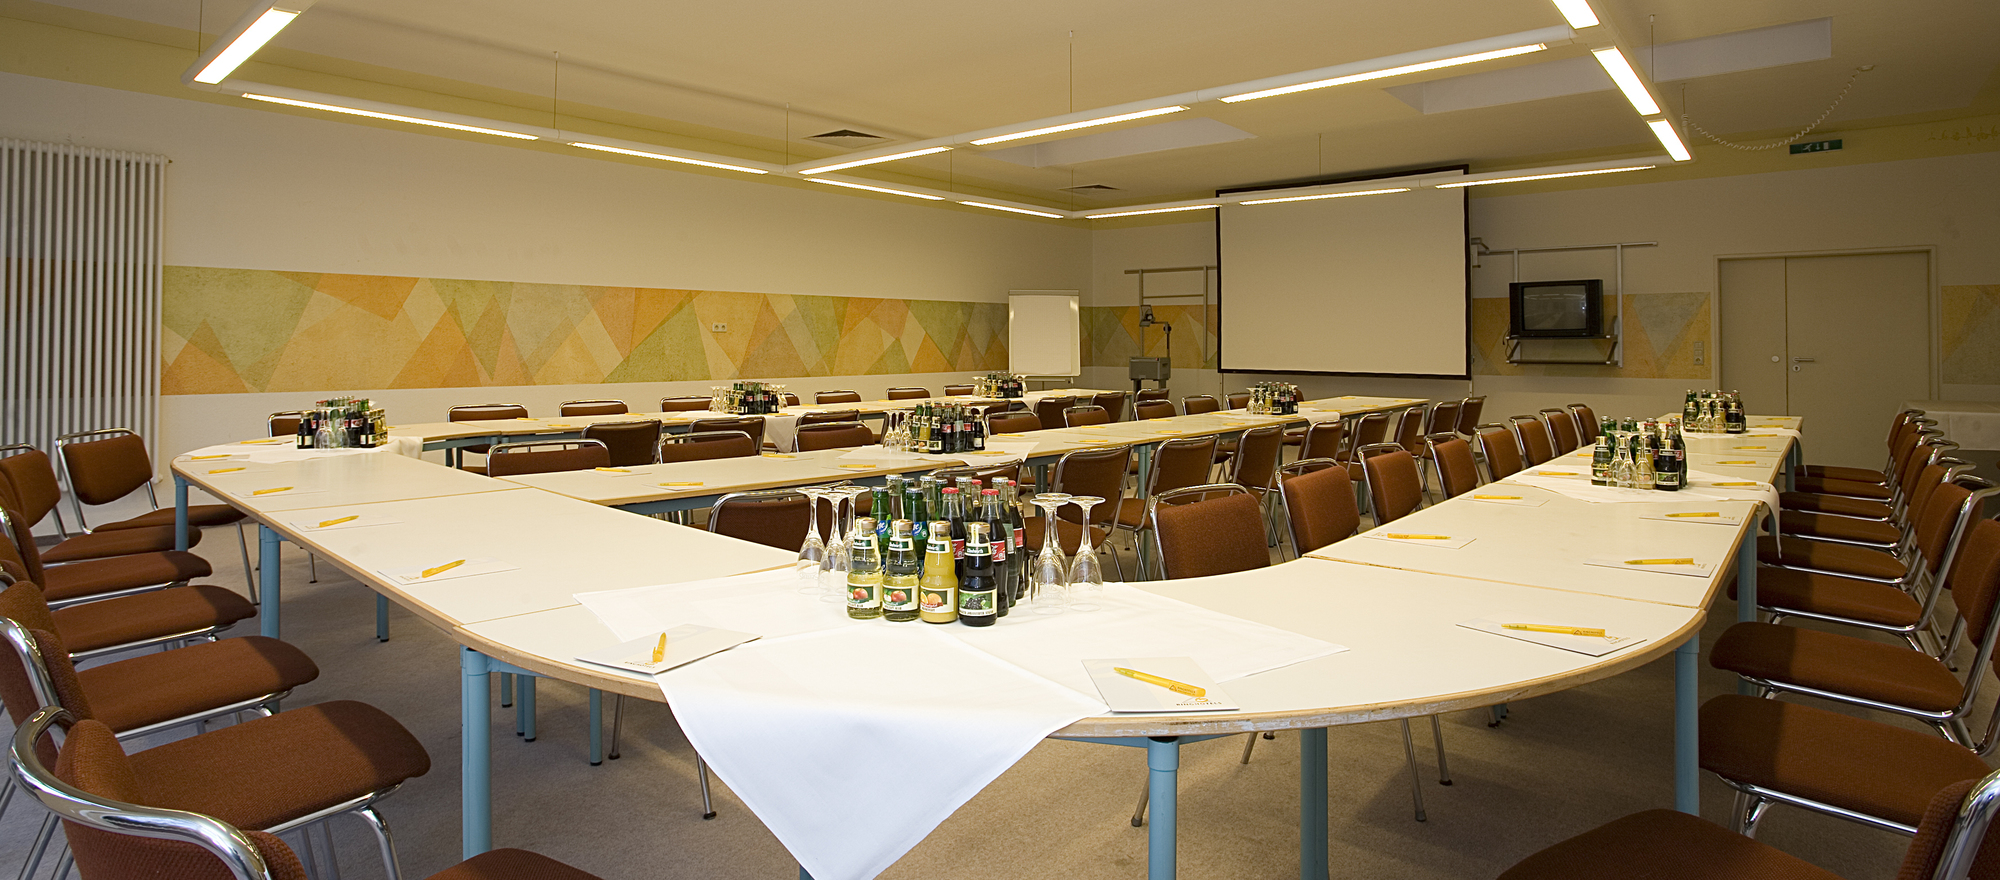 Spacious event rooms at the 4-star hotel Ringhotel Residenz in Wittmund